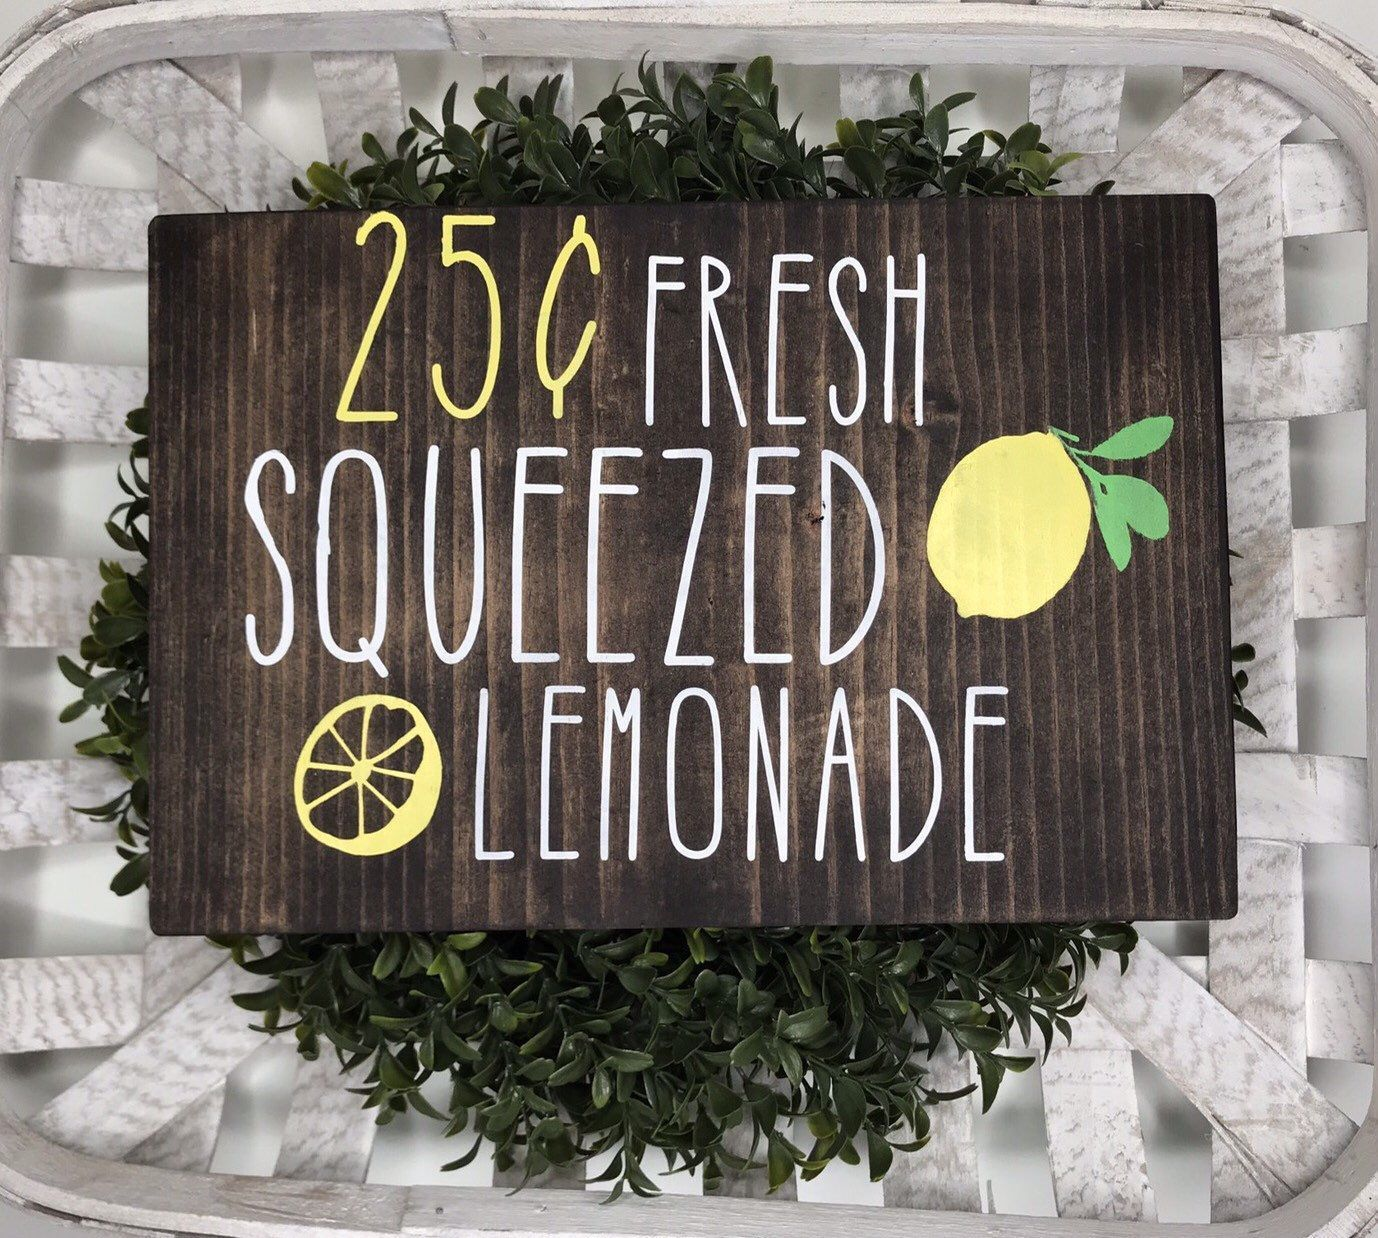 Lemon Sign/ Lemo Decor/ Fresh Squeezed Lemonade/ Kitchen Signs/ Summer Decor/ Farmhouse Style #freshsqueezedlemonade Come see what's new! Lemon Sign/ Lemo Decor/ Fresh Squeezed Lemonade/ Kitchen Signs/ Summer Decor/ Farmhouse Style #etsy #homedecor #rusticdecor #kitchendecor #lemons #woodsign #handmade #paint #freshsqueezedlemonade Lemon Sign/ Lemo Decor/ Fresh Squeezed Lemonade/ Kitchen Signs/ Summer Decor/ Farmhouse Style #freshsqueezedlemonade Come see what's new! Lemon Sign/ Lemo Decor/ #freshsqueezedlemonade